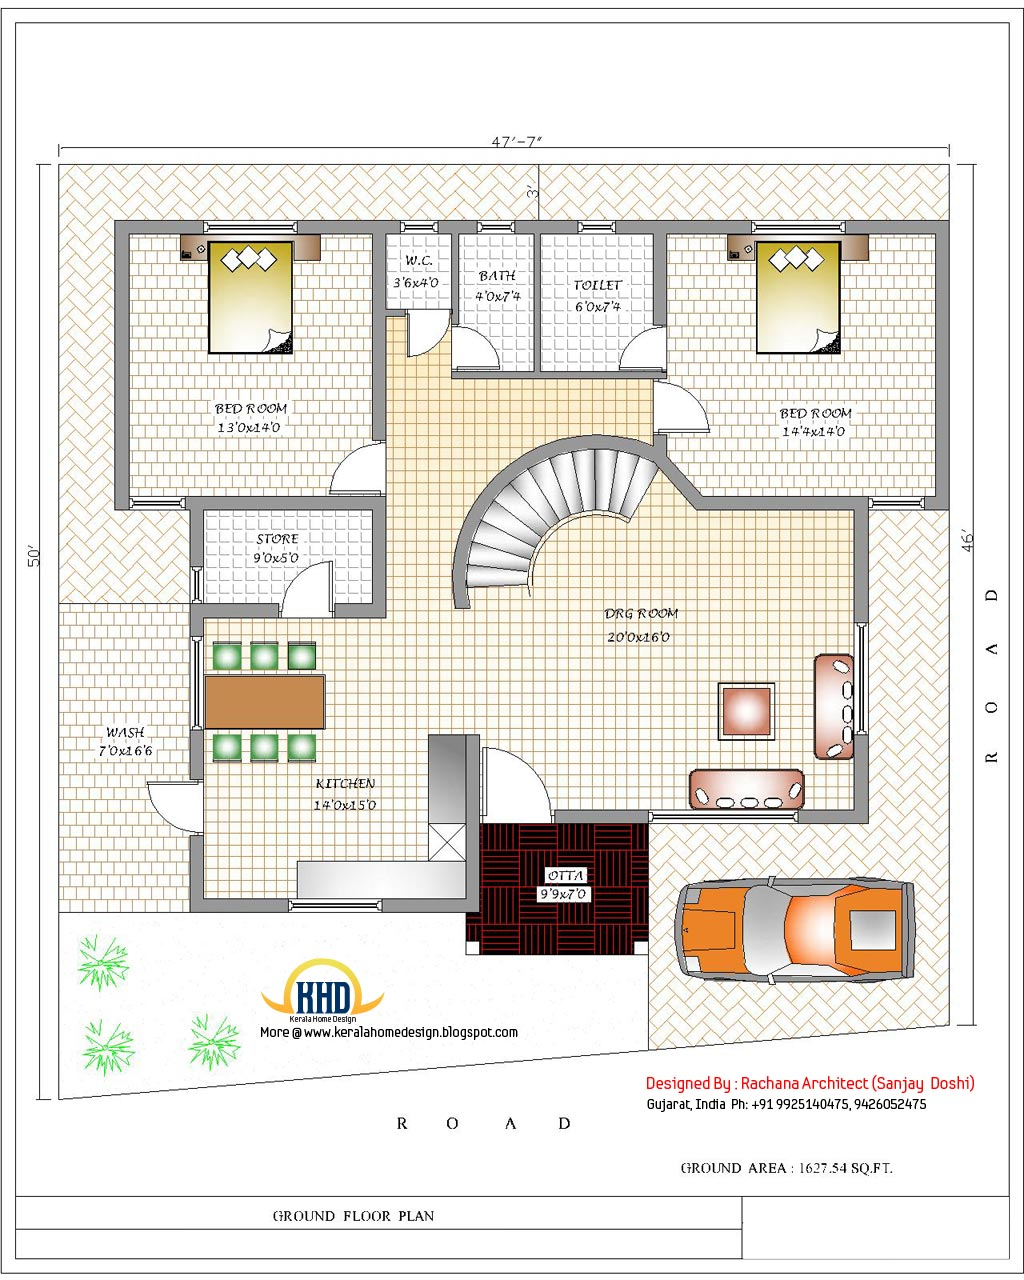 India home design with house plans 3200 sq ft kerala for New small home designs in india